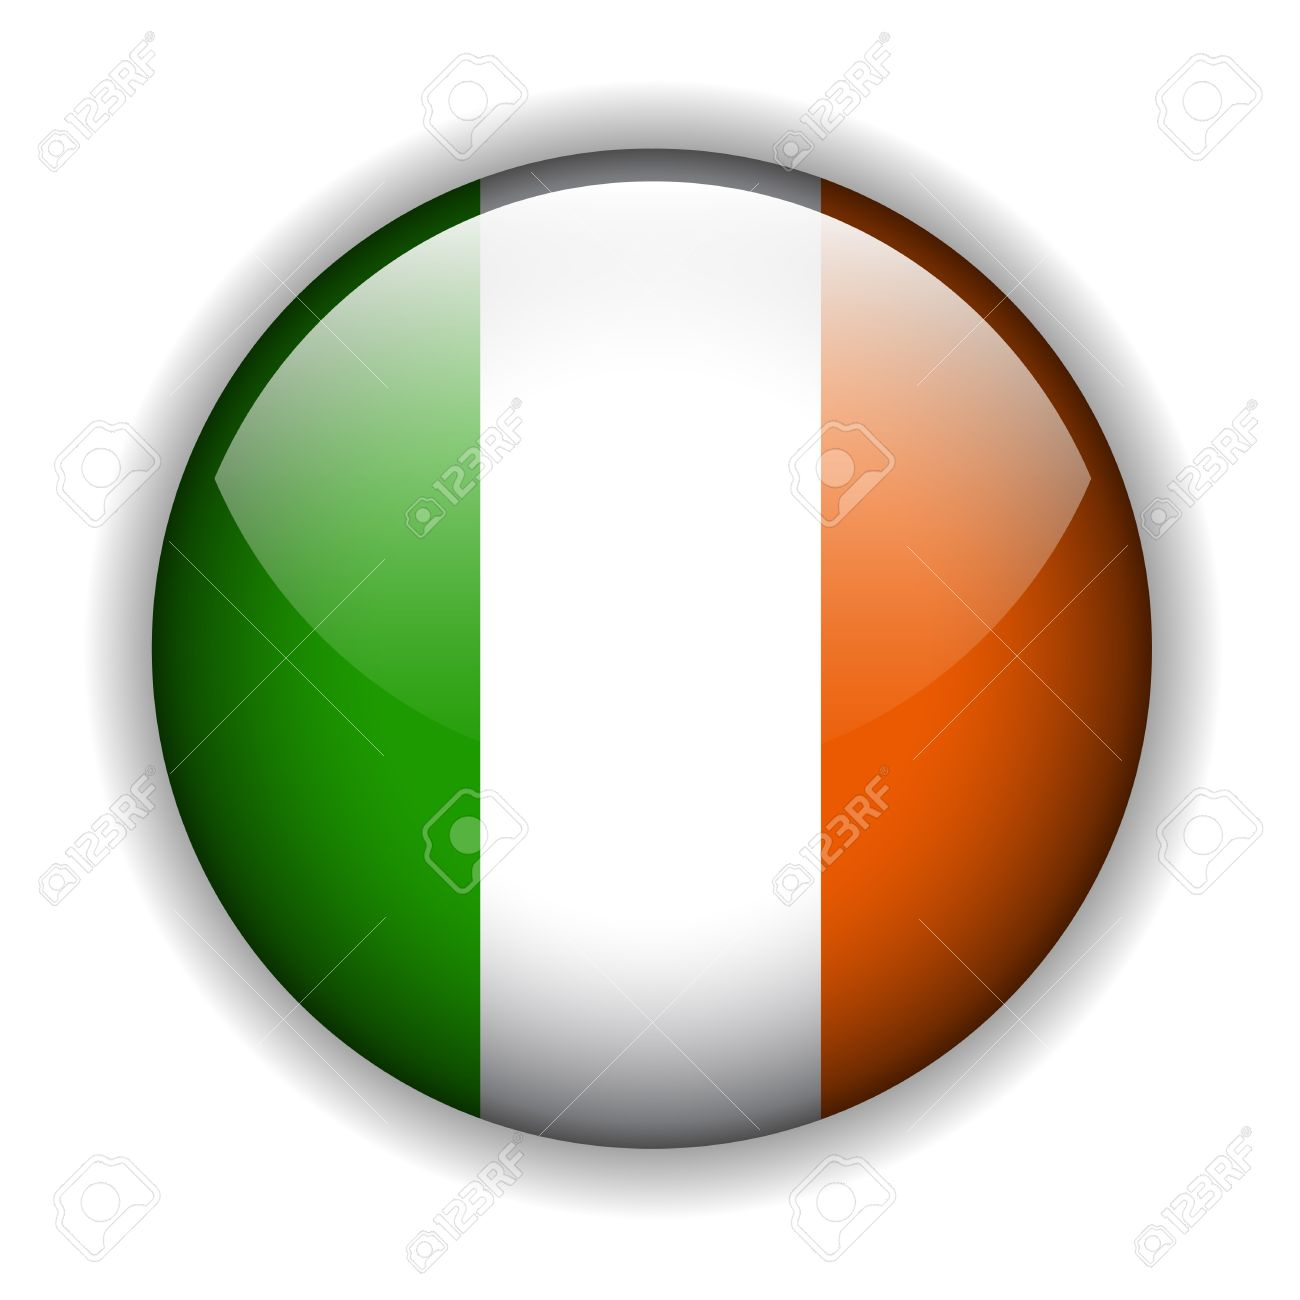 national flag of ireland irish flag glossy button royalty free